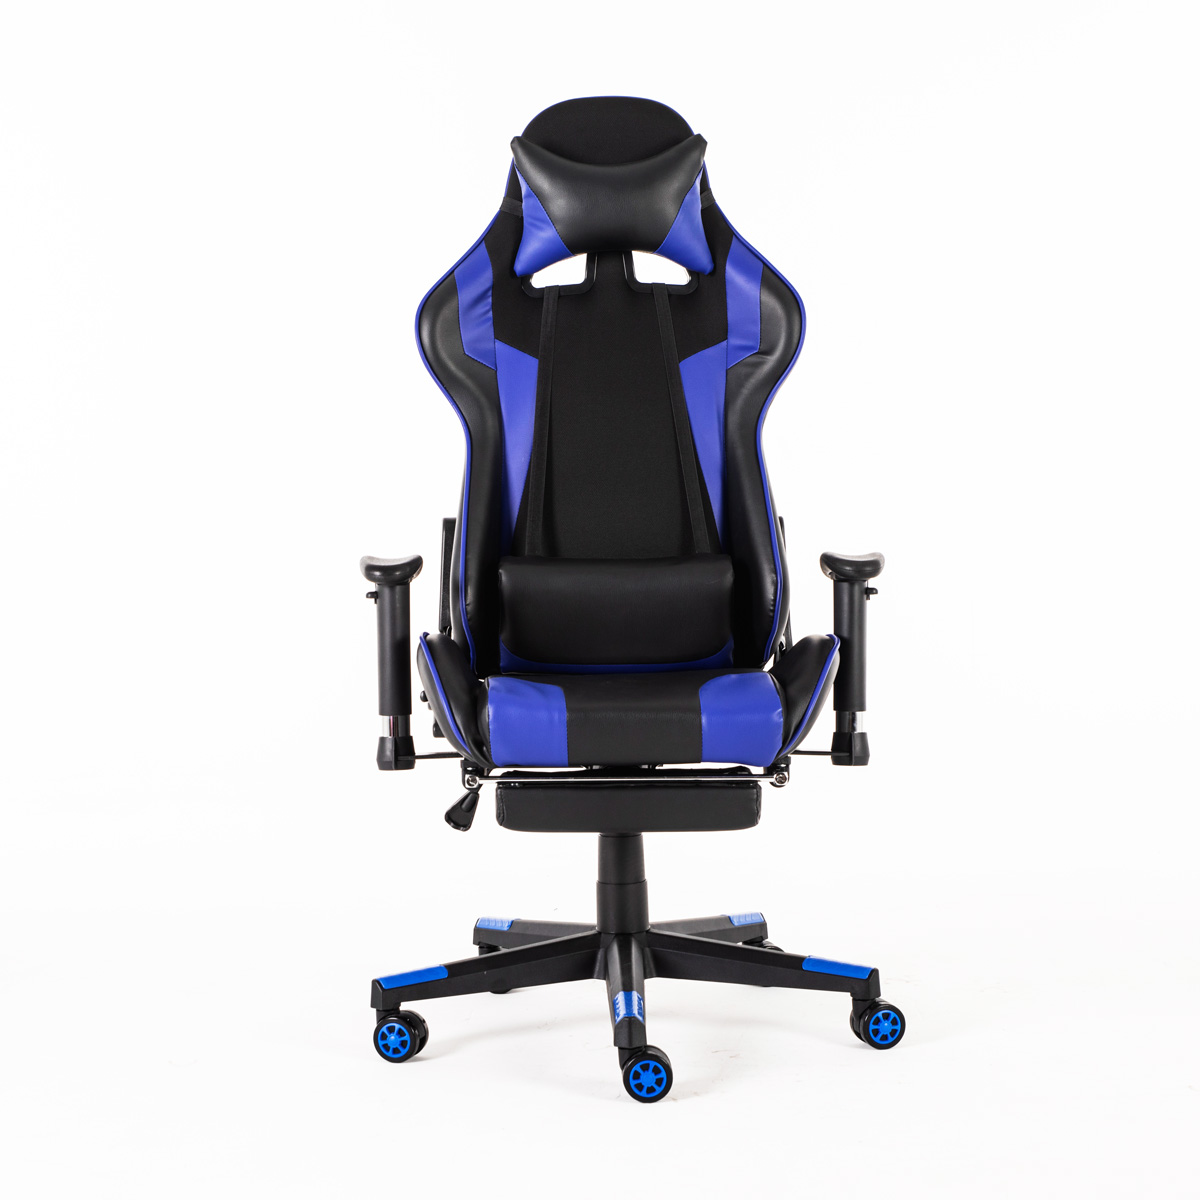 180° Gaming Chair Electrified Internet Office Chairs Ergonomic Computer Chair Footrest Cafe WCG Computer Comfortable Home Chair